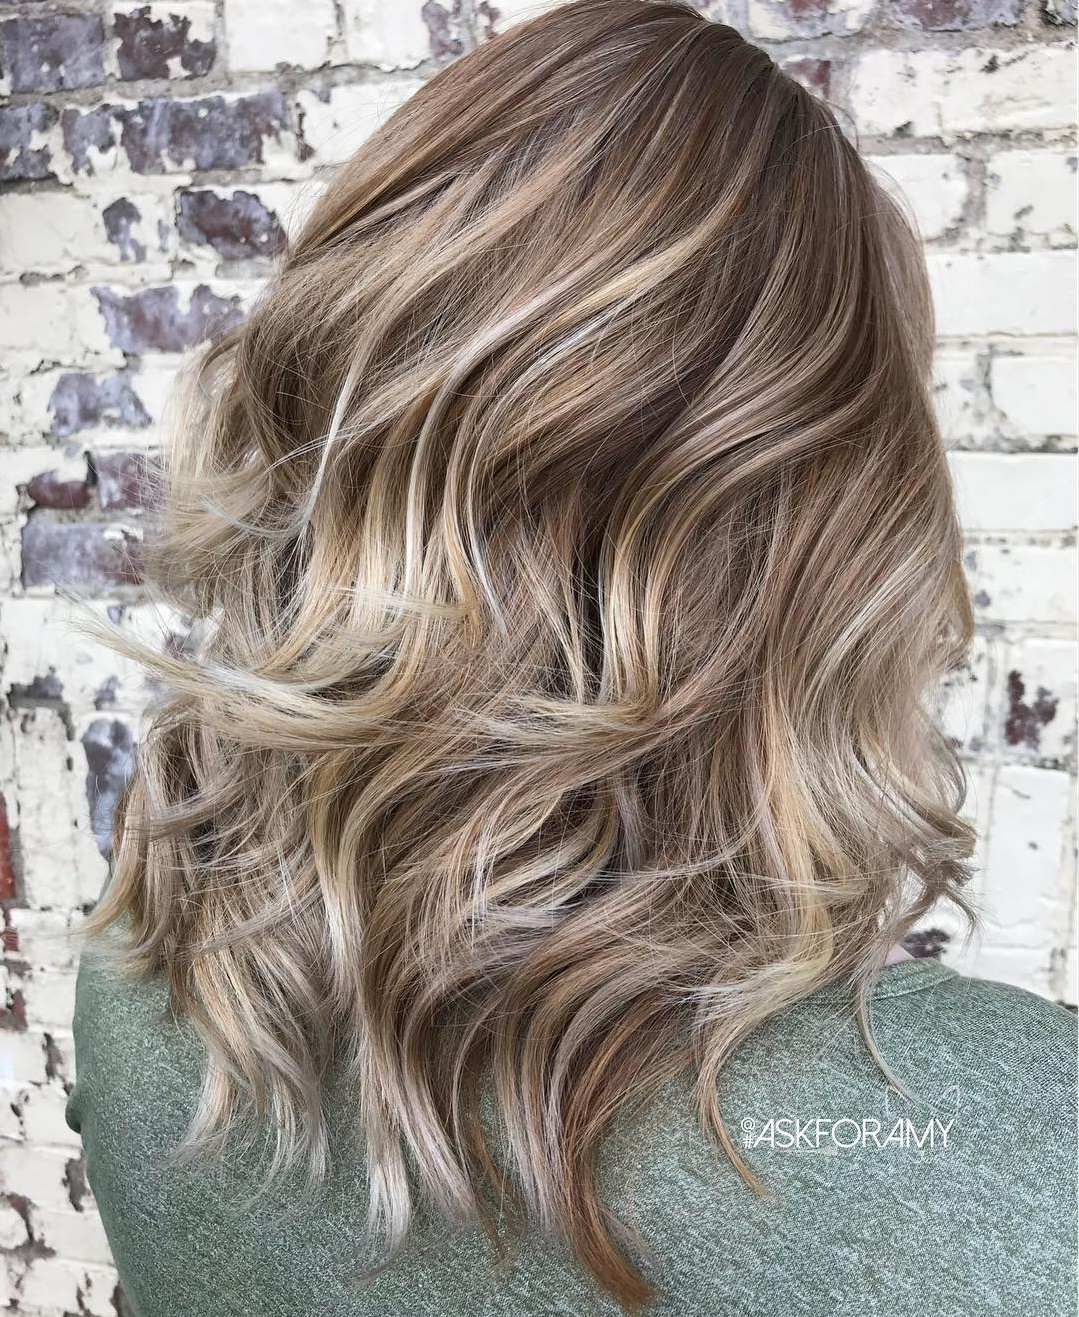 Mid-Length Bronde Wavy Layered Hairstyle